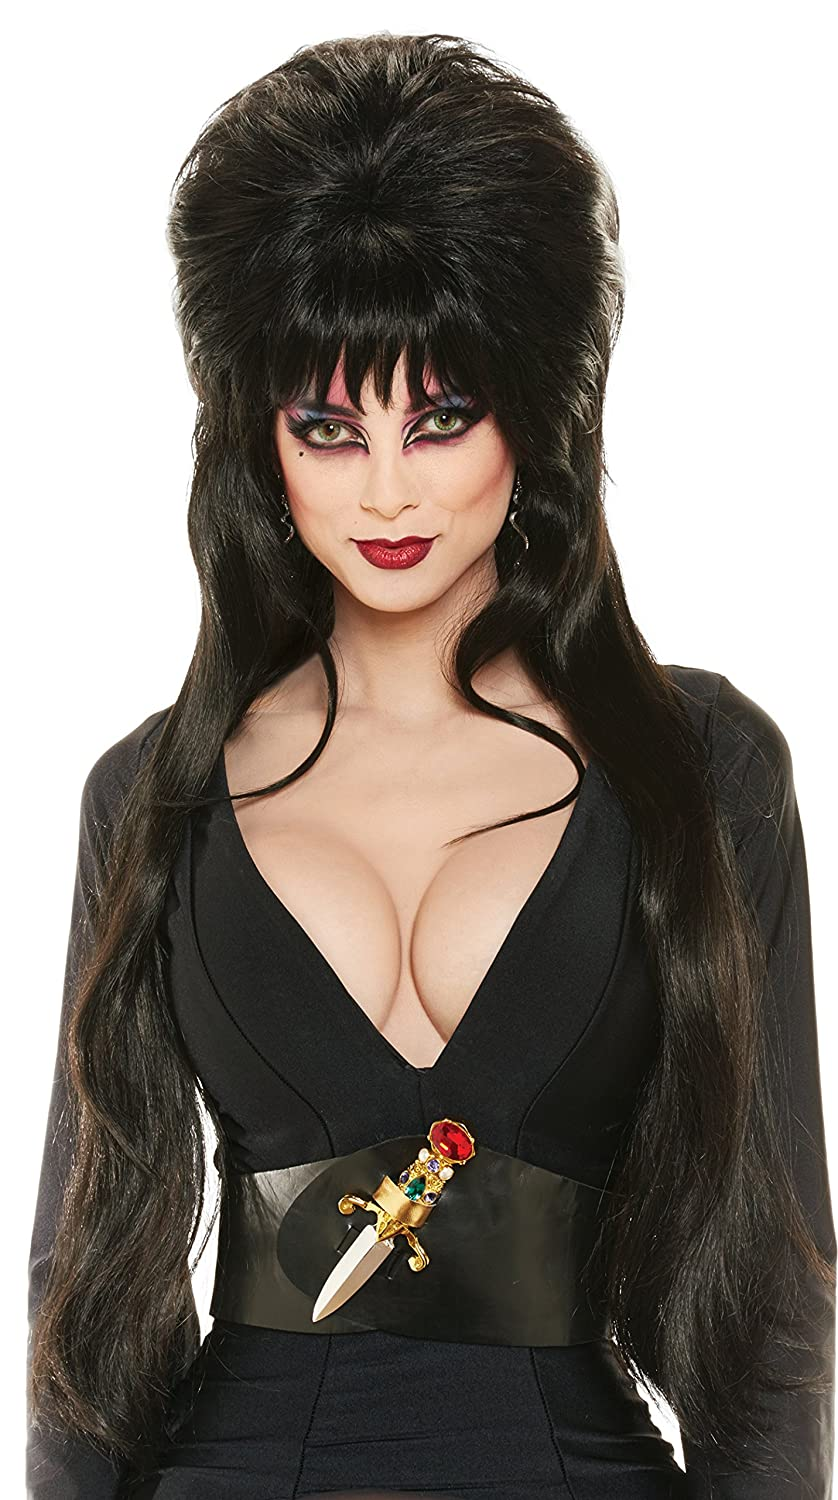 Rubies Costume Deluxe Elvira Wig Black One Size Rubies Costume Co (Canada) 51733